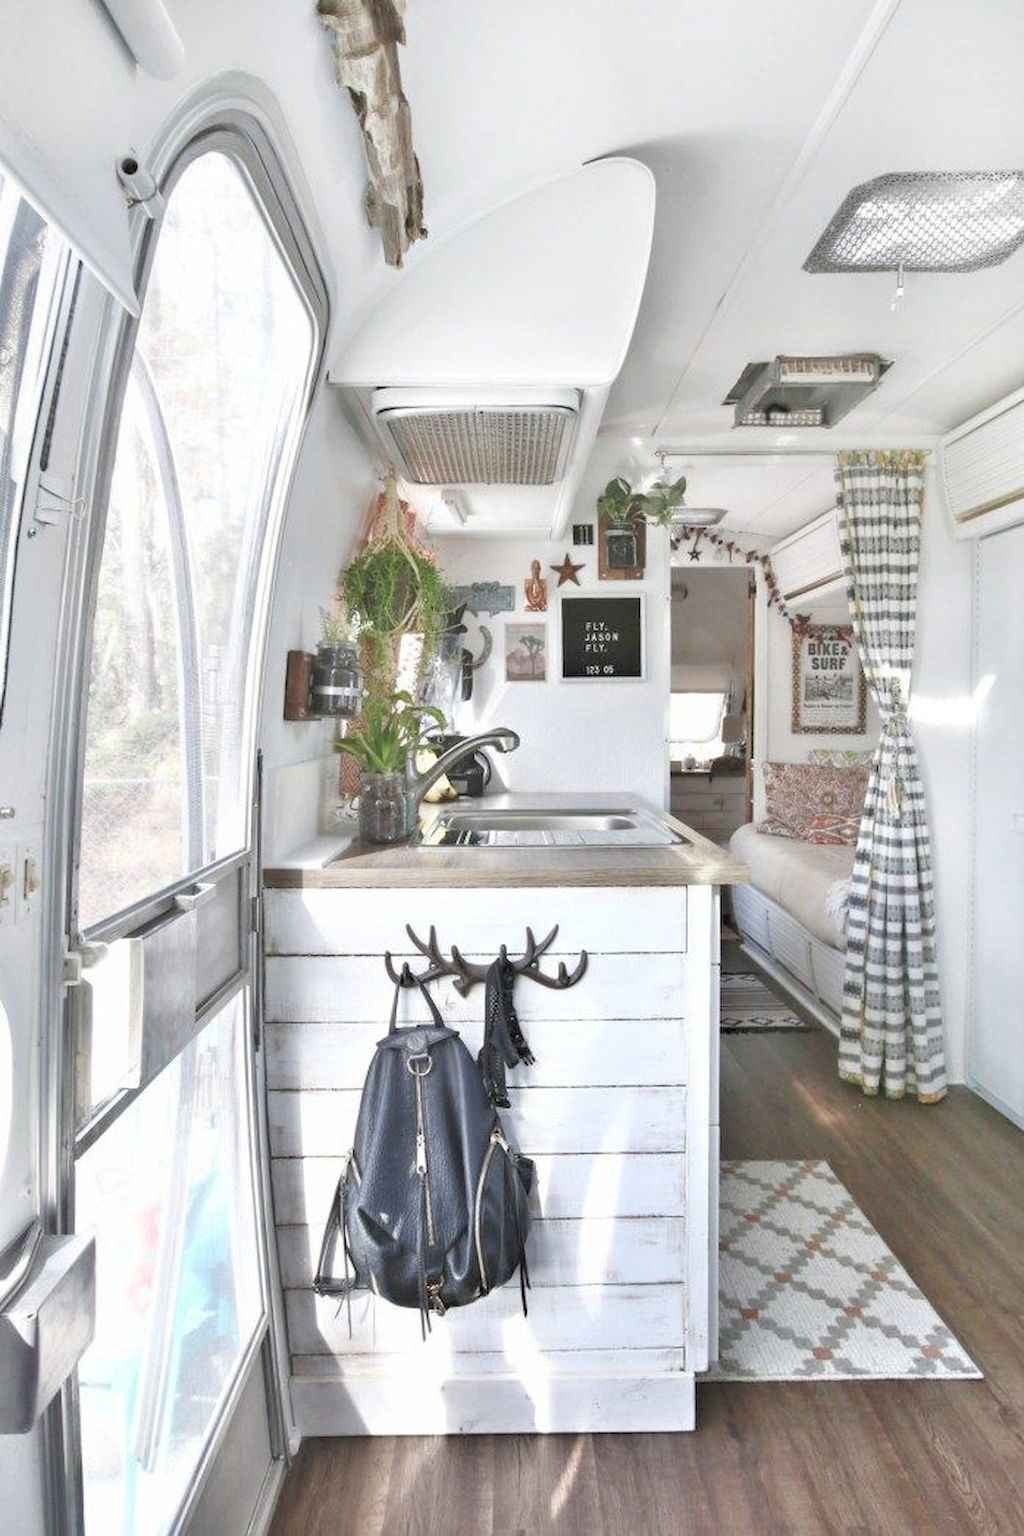 90 modern rv remodel travel trailers ideas (36) - Roomadness.com